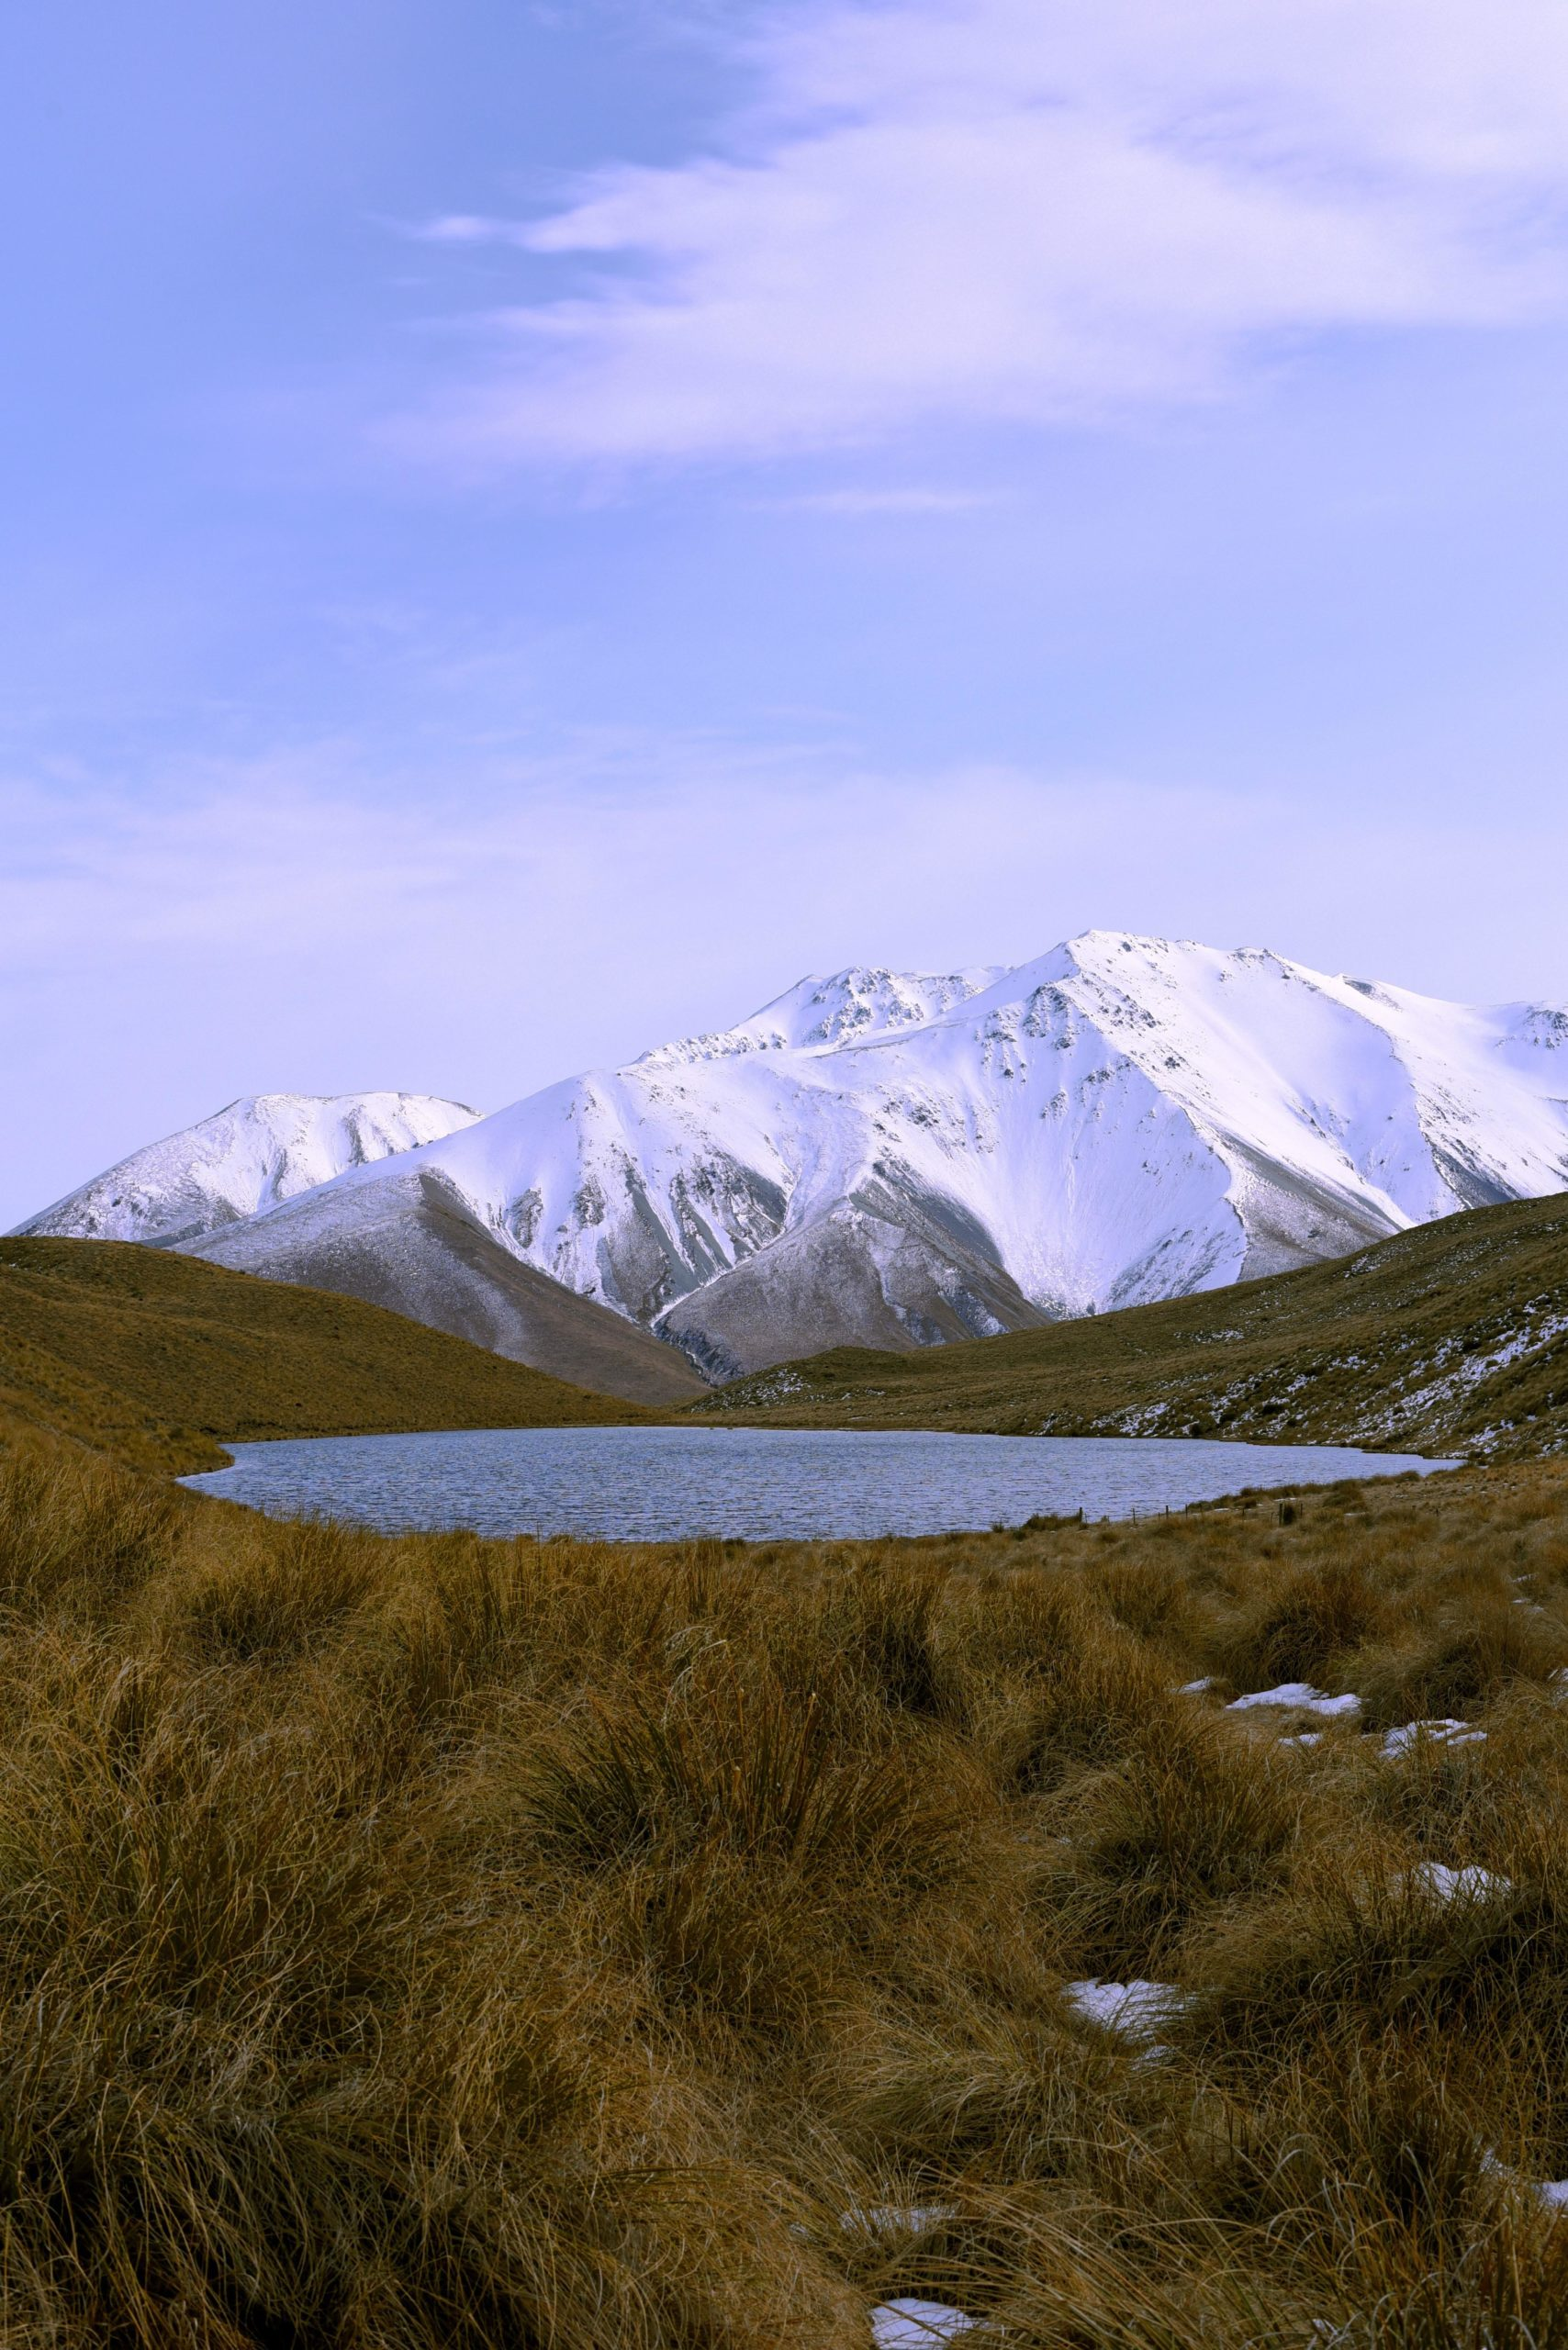 Mystery Lake with Mt. Potts backdrop, New Zealand